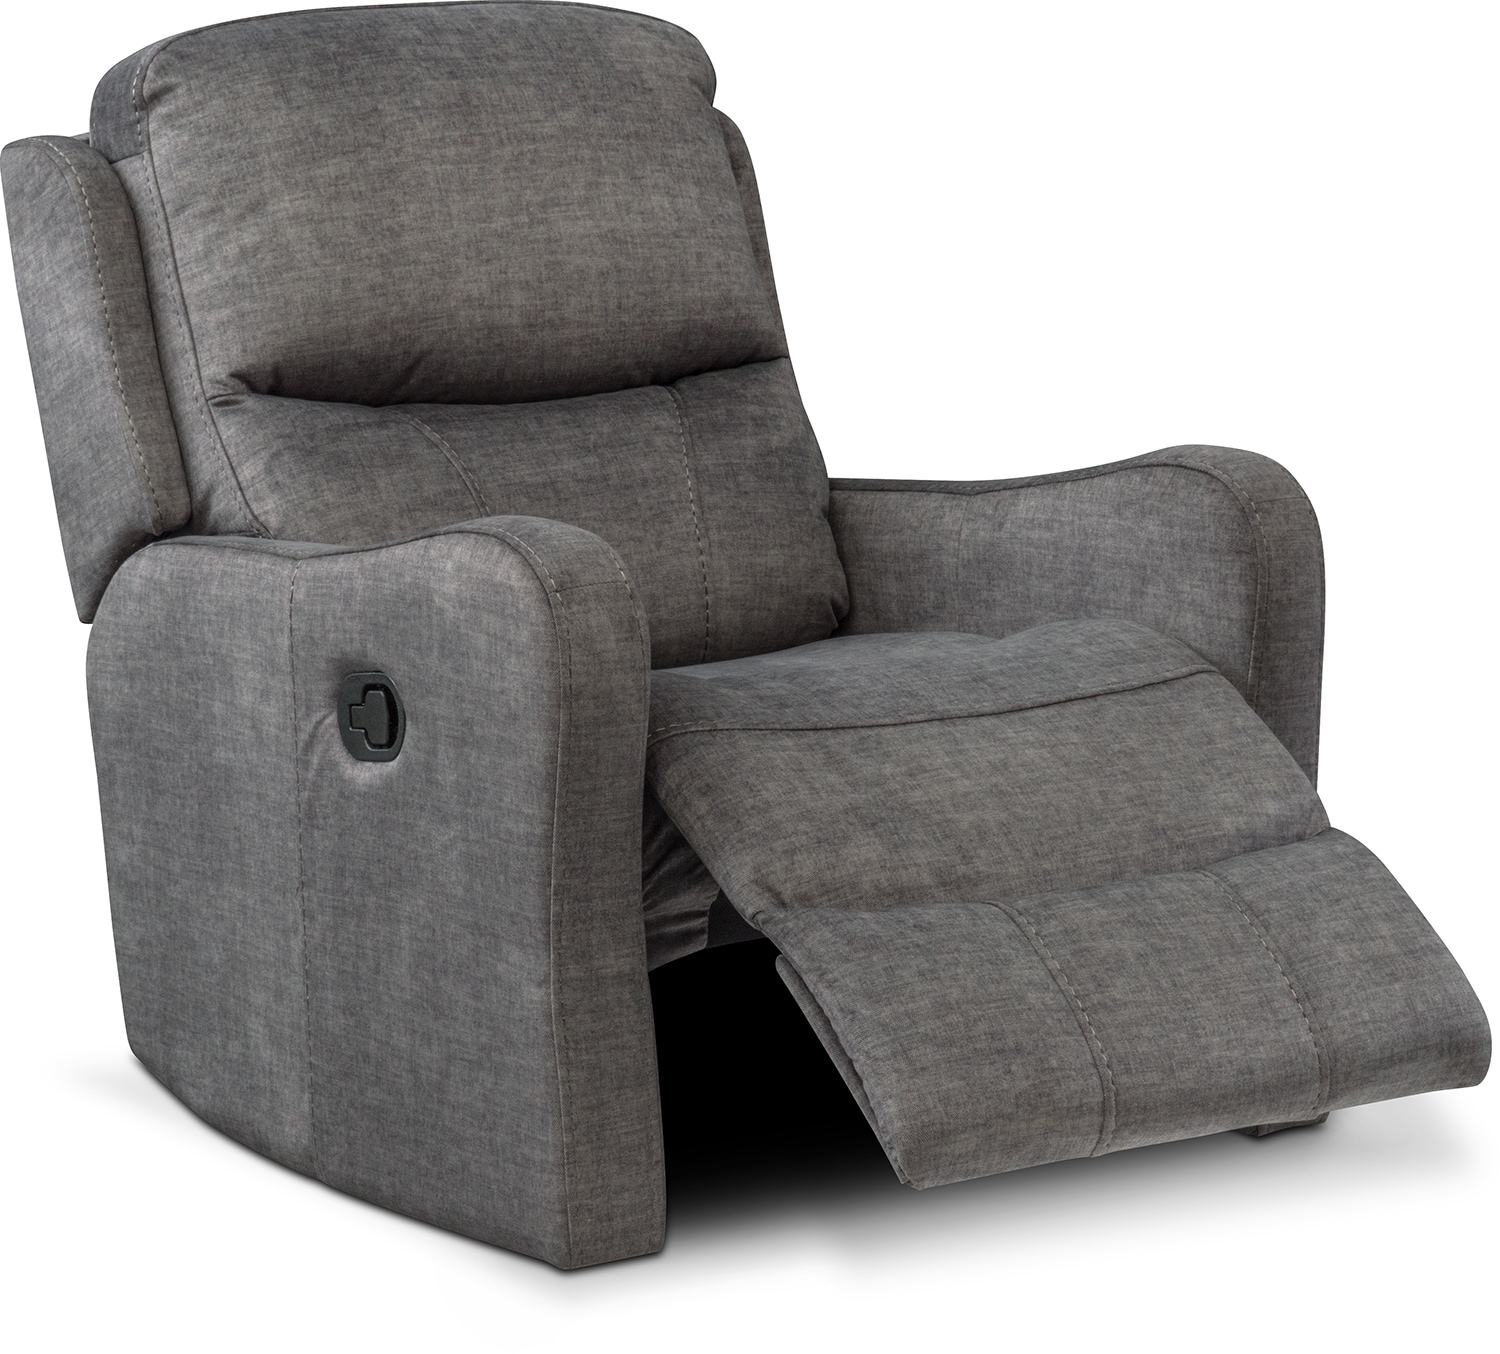 brayburn design rocker signature unique ashley of recliner value by recliners city furniture contemporary